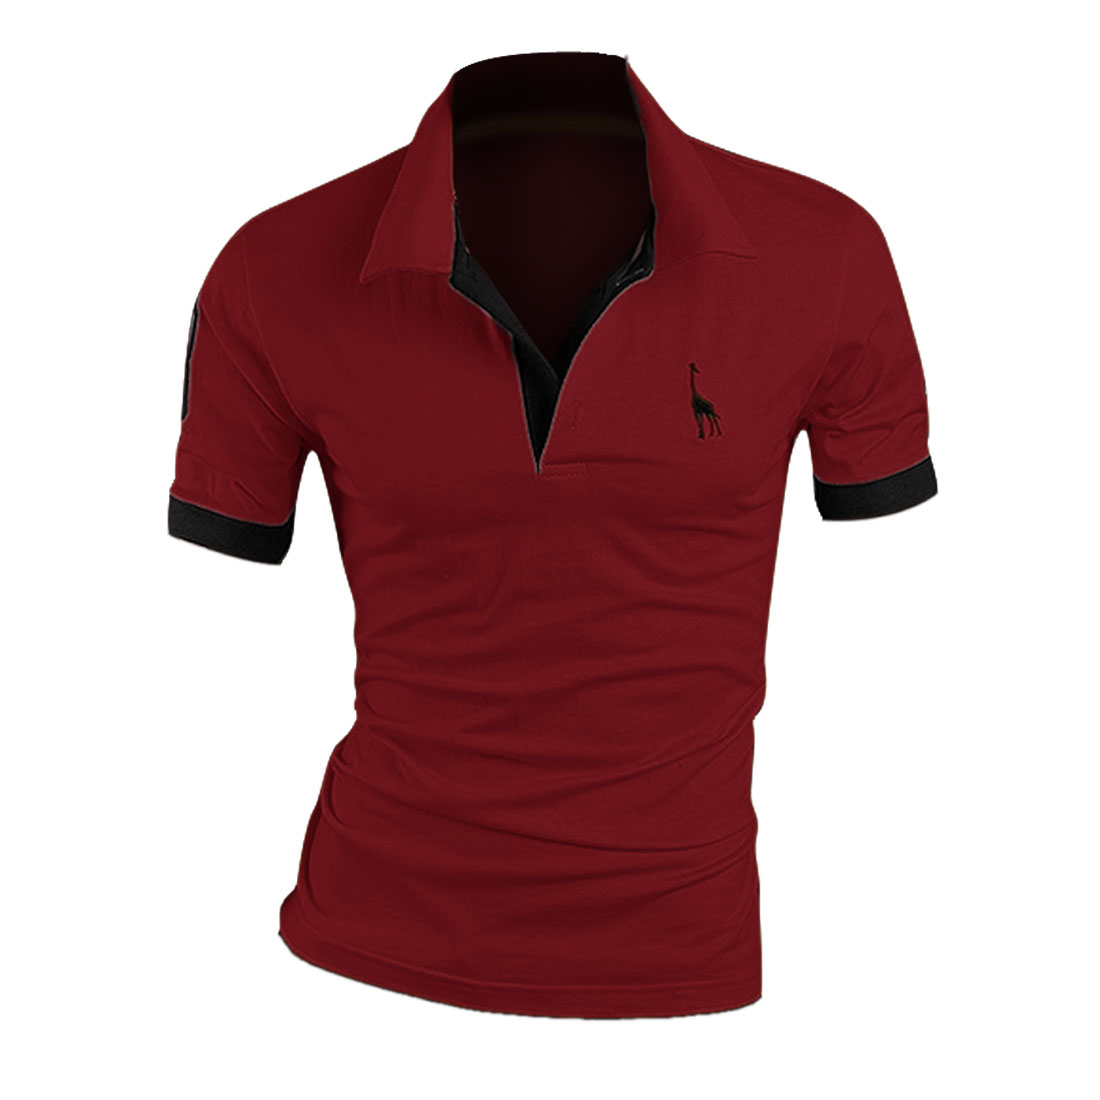 Man Buttons Upper Front Polo Number Pattern Modern Shirt Burgundy M